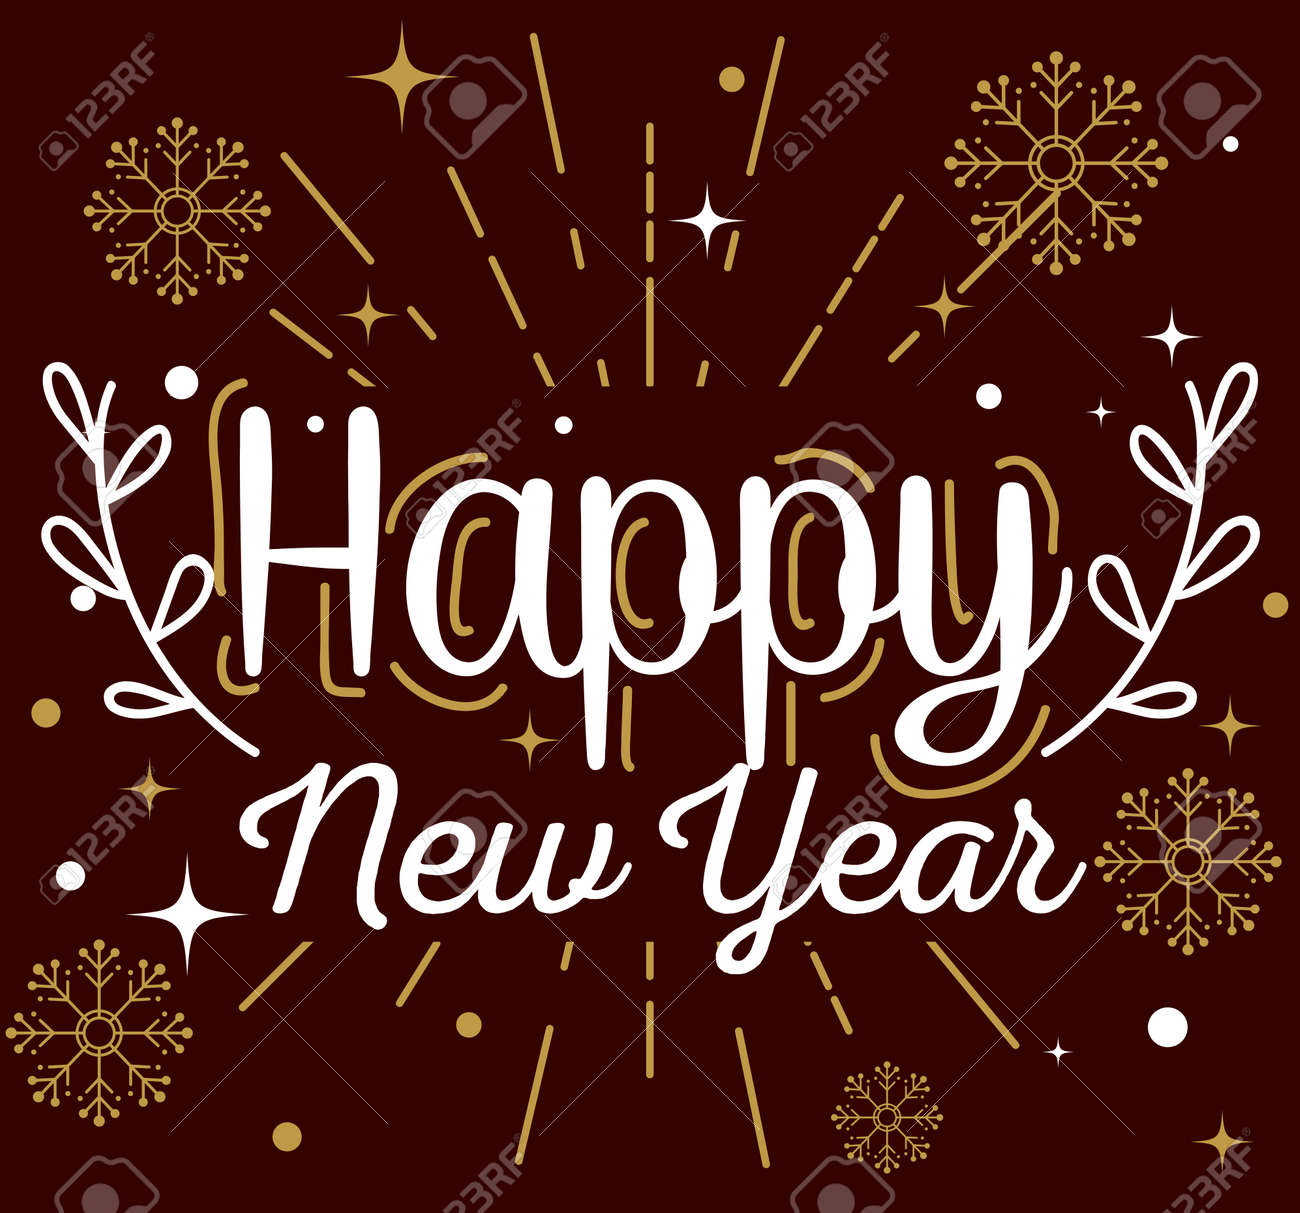 Happy new year with snowflakes design, Welcome celebrate and greeting theme Vector illustration - 156708124